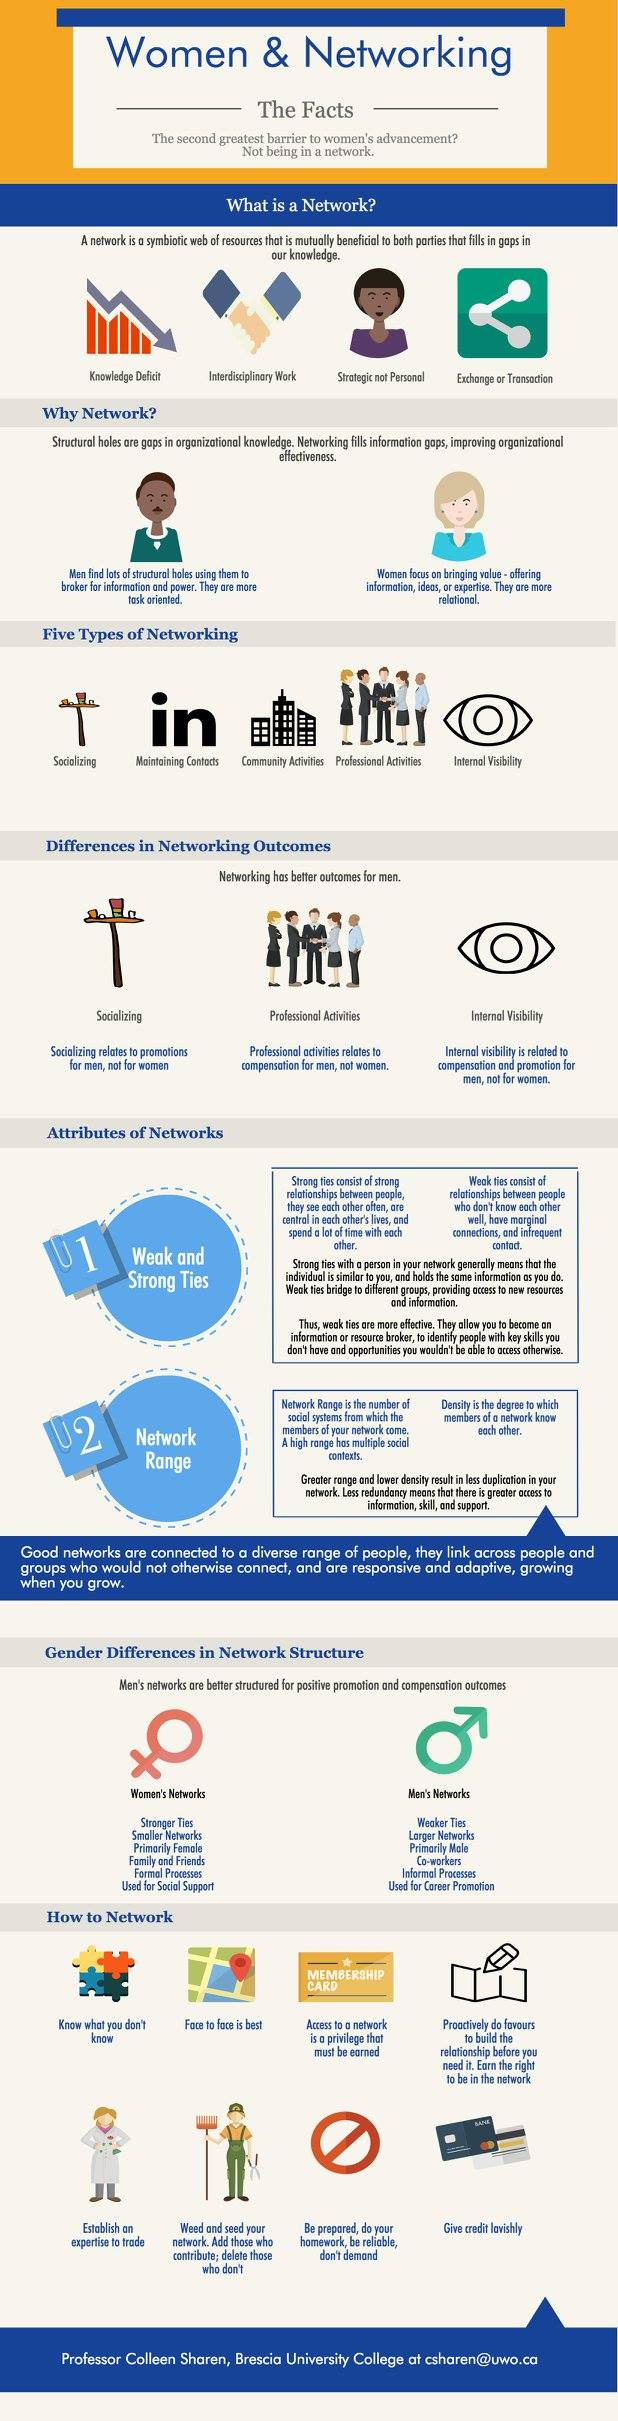 Infographic by Colleen Sharen and used here with permission.